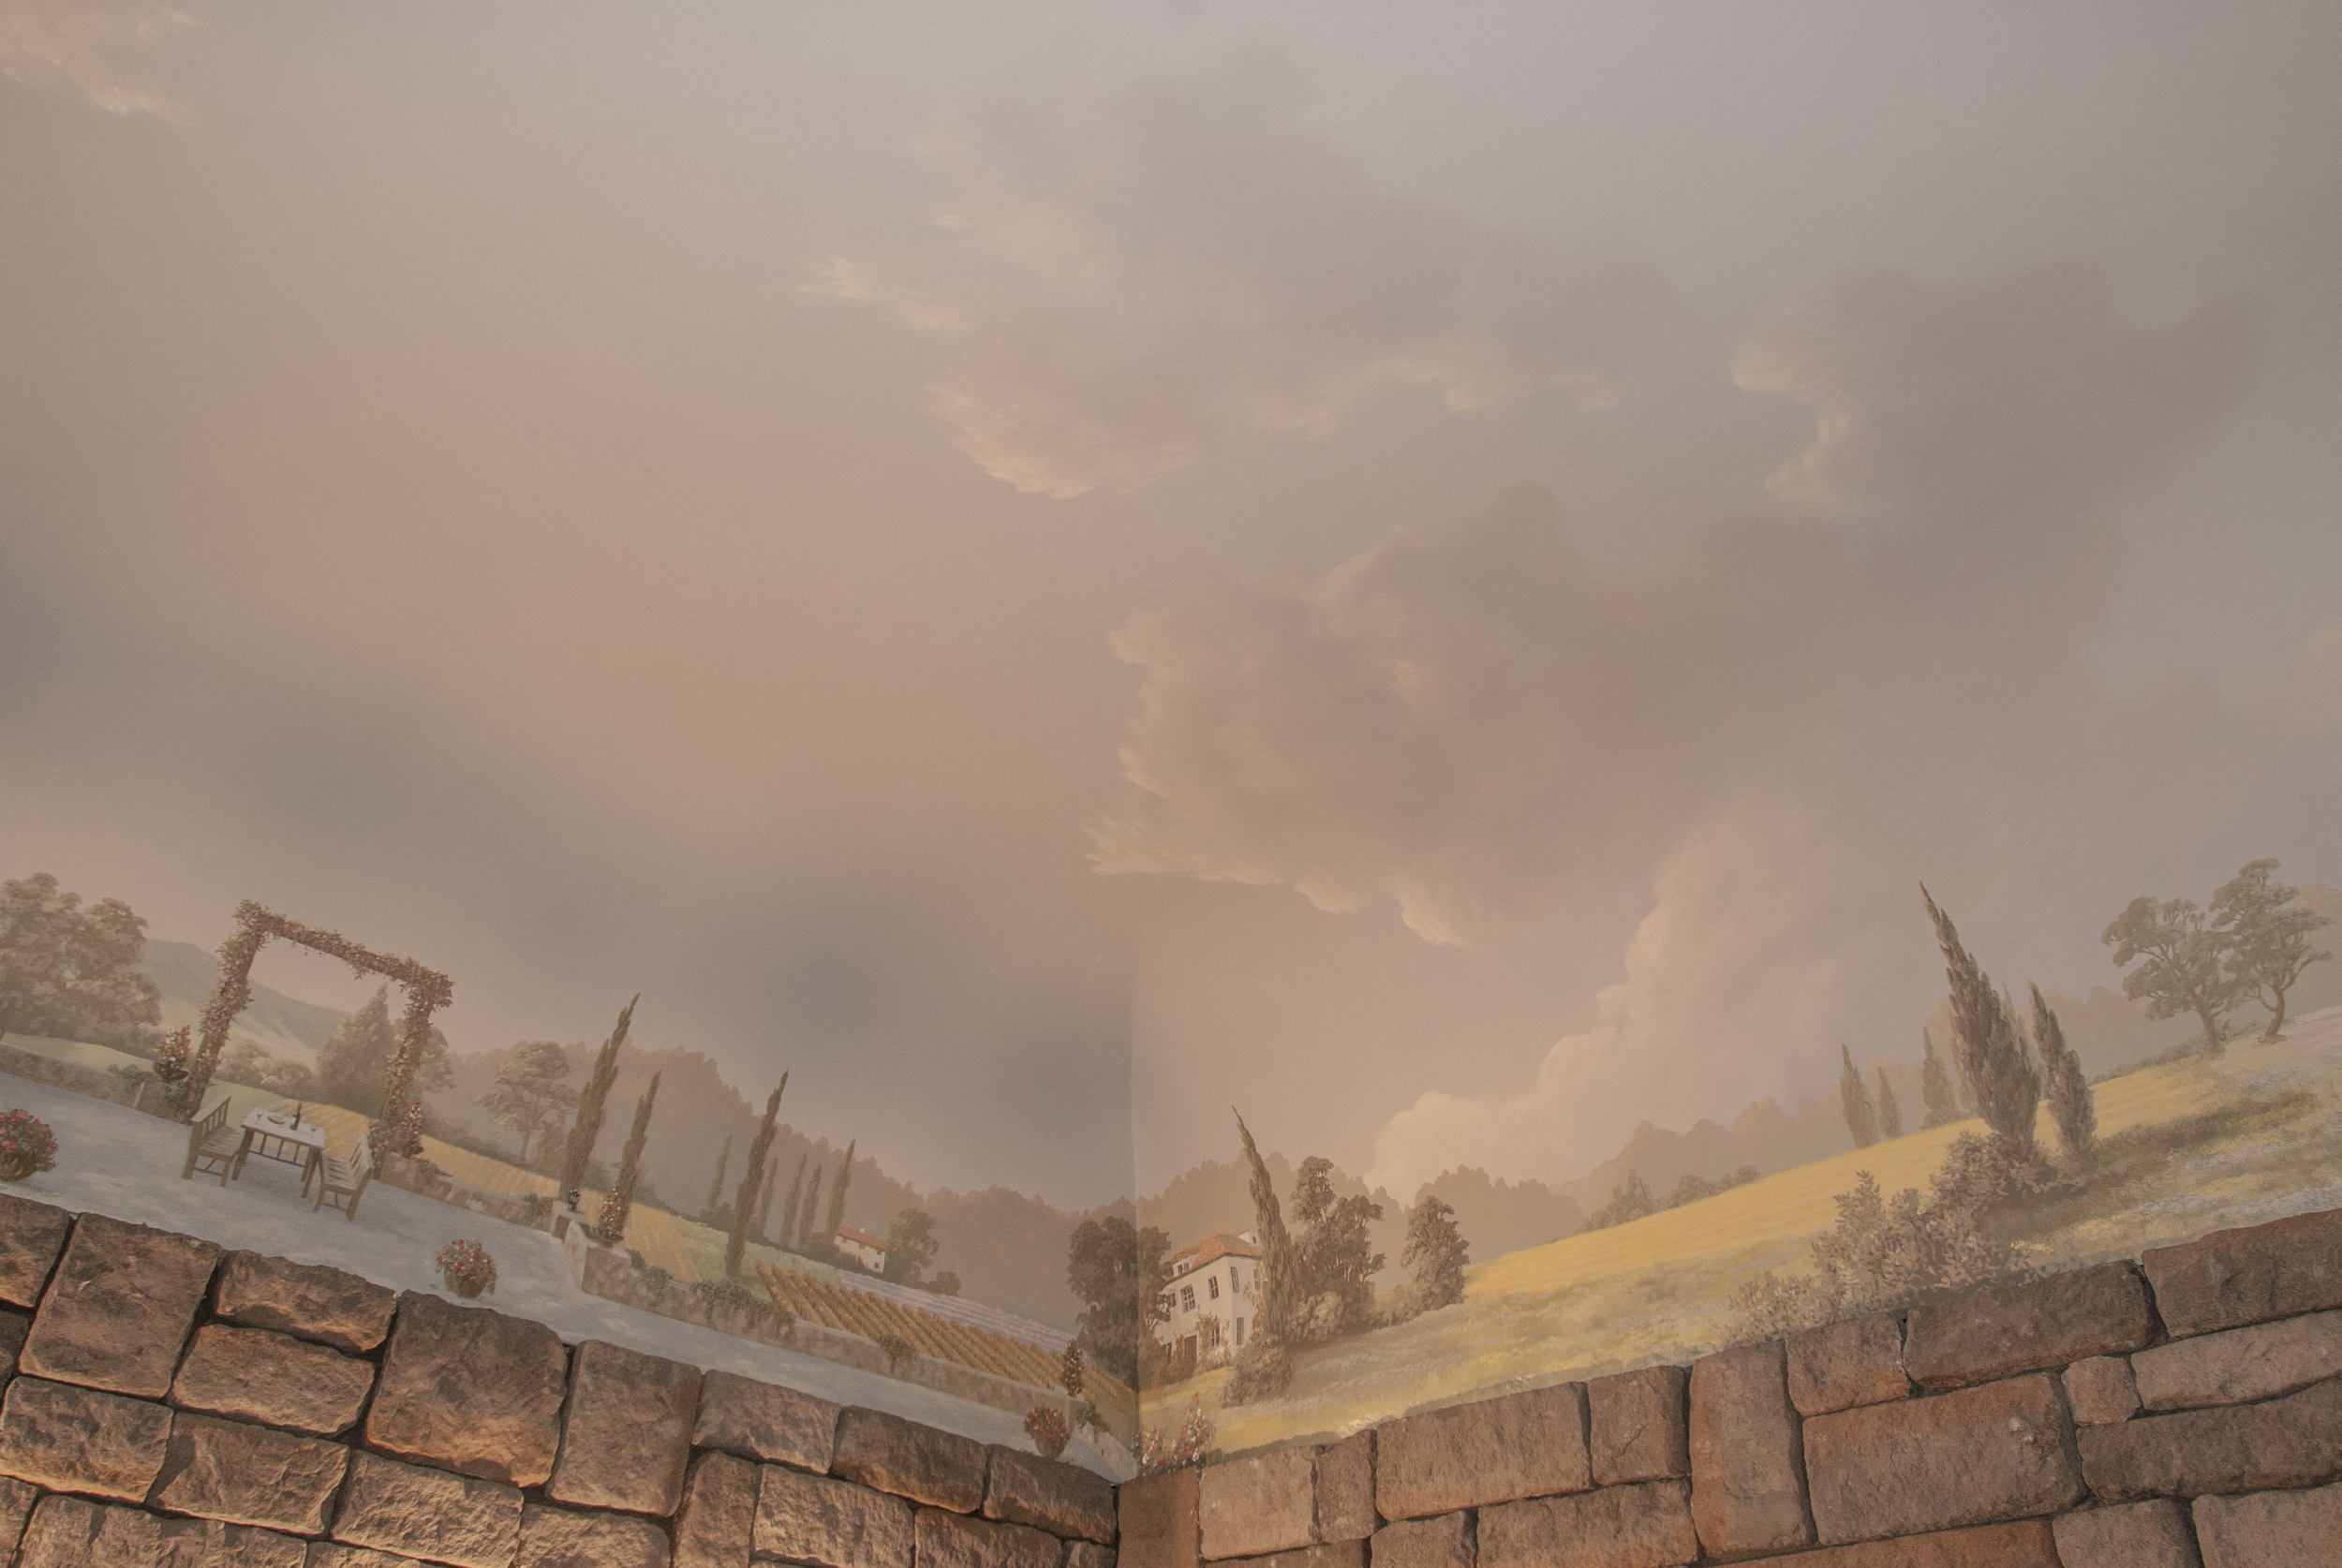 Painted on a traditional plaster domed ceiling the mural is a continuous scene of a Tuscan countryside.